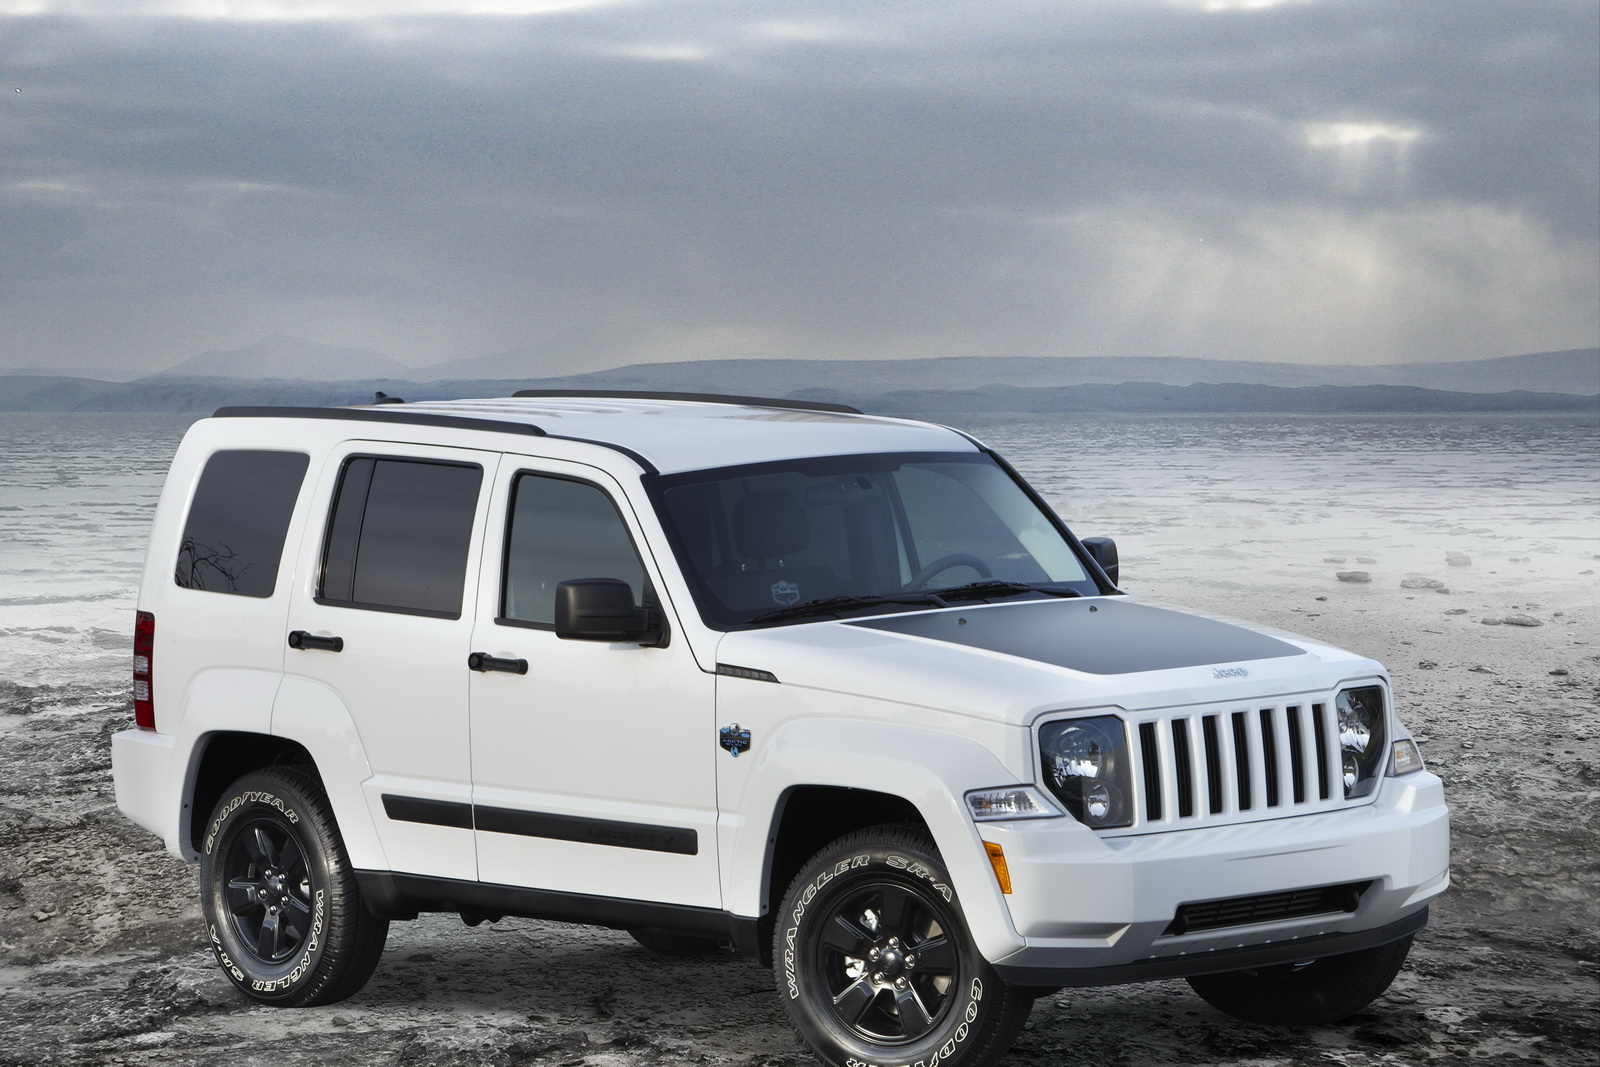 Jeep Wrangler And Liberty Suv Arctic Specials A Review